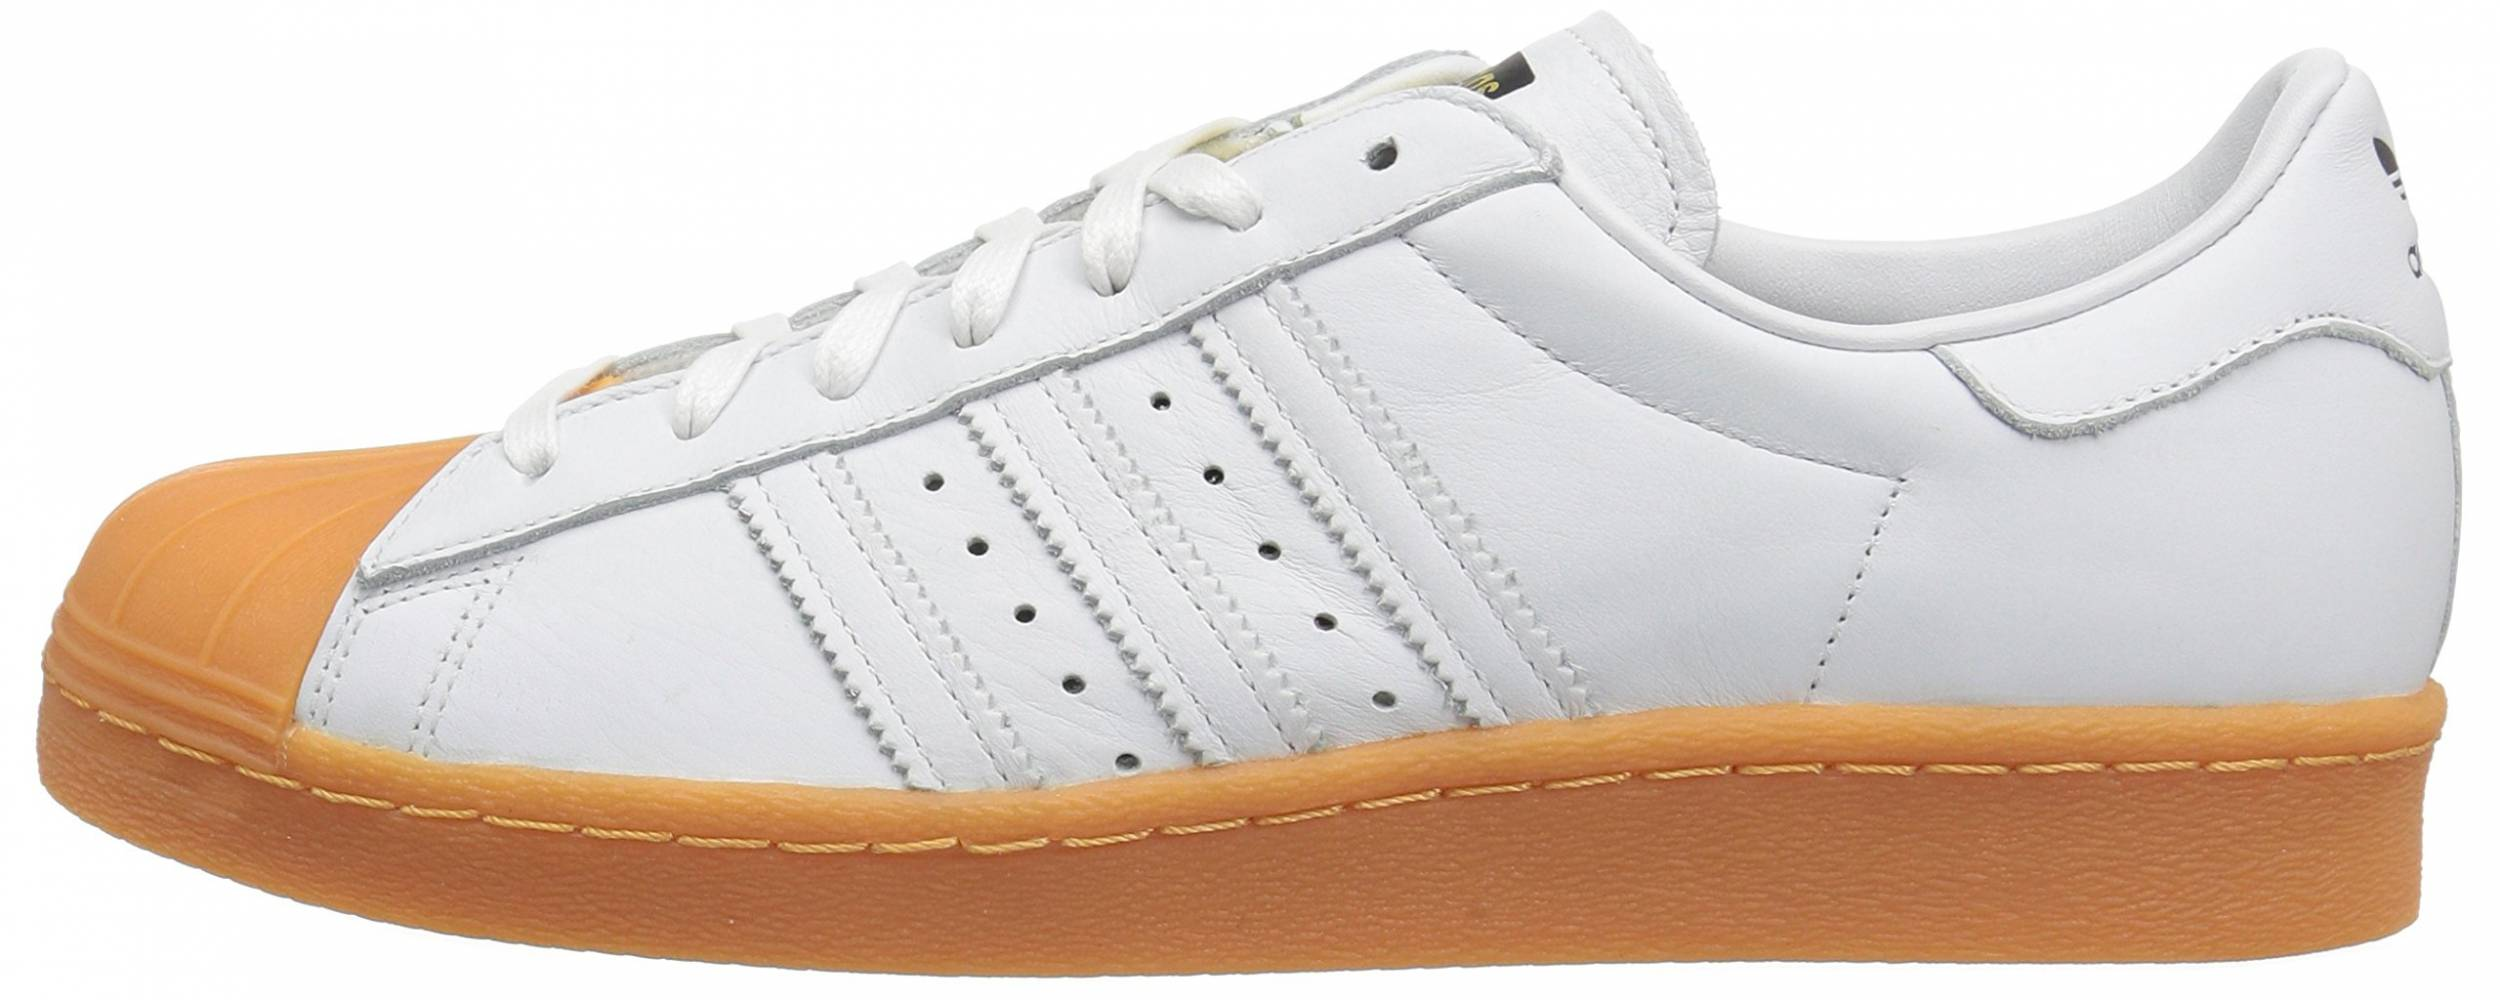 Adidas Superstar 80s DLX sneakers in white | RunRepeat